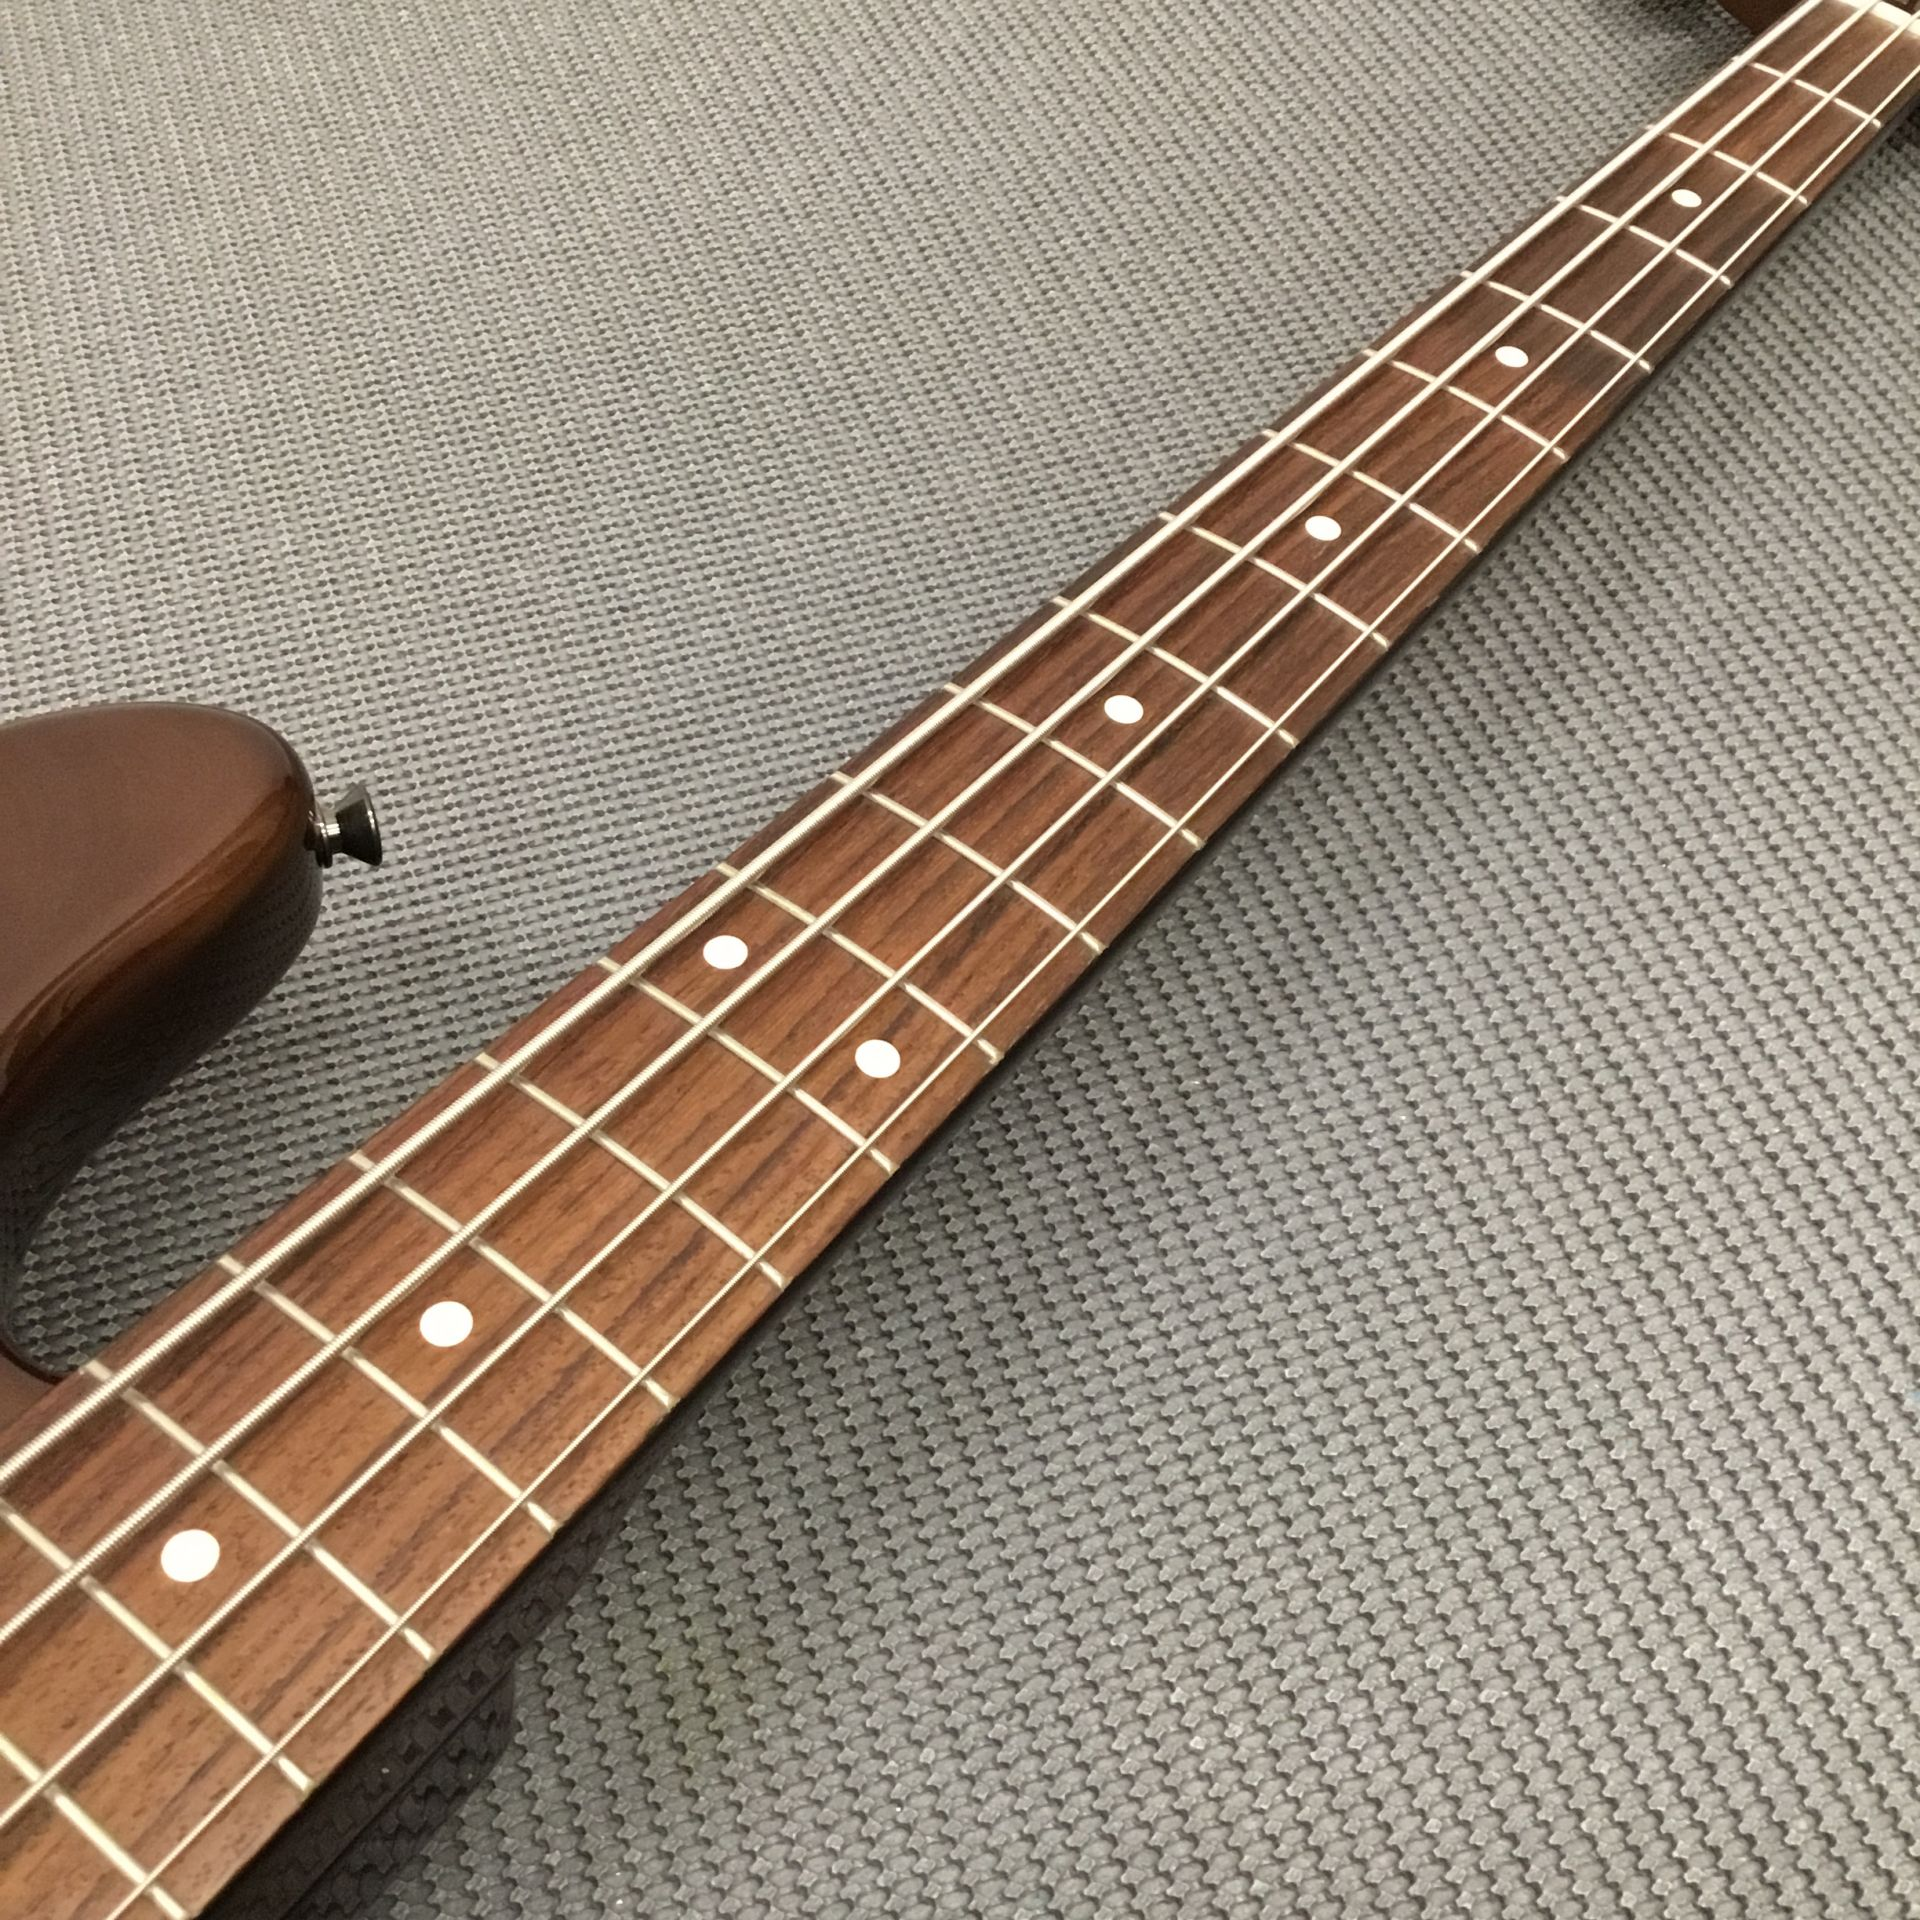 MADE IN JAPAN TRADITIONAL 60S JAZZ BASS WALNUTのボディバック-アップ画像